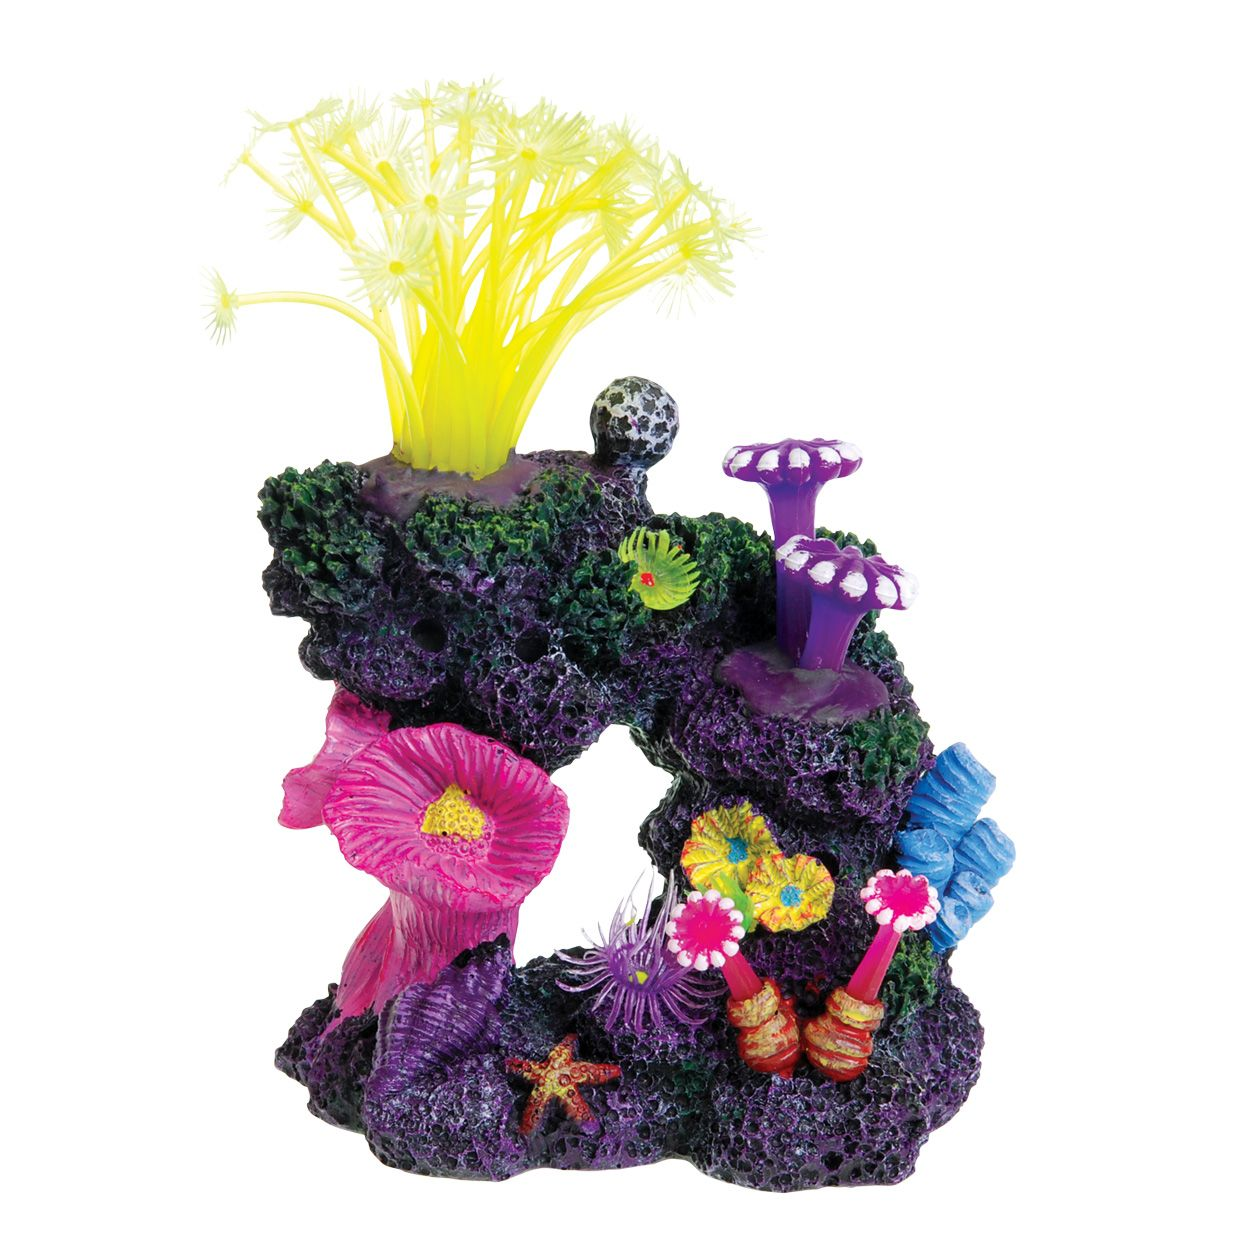 Underwater Treasures Reef Scenery - Style B (Small)